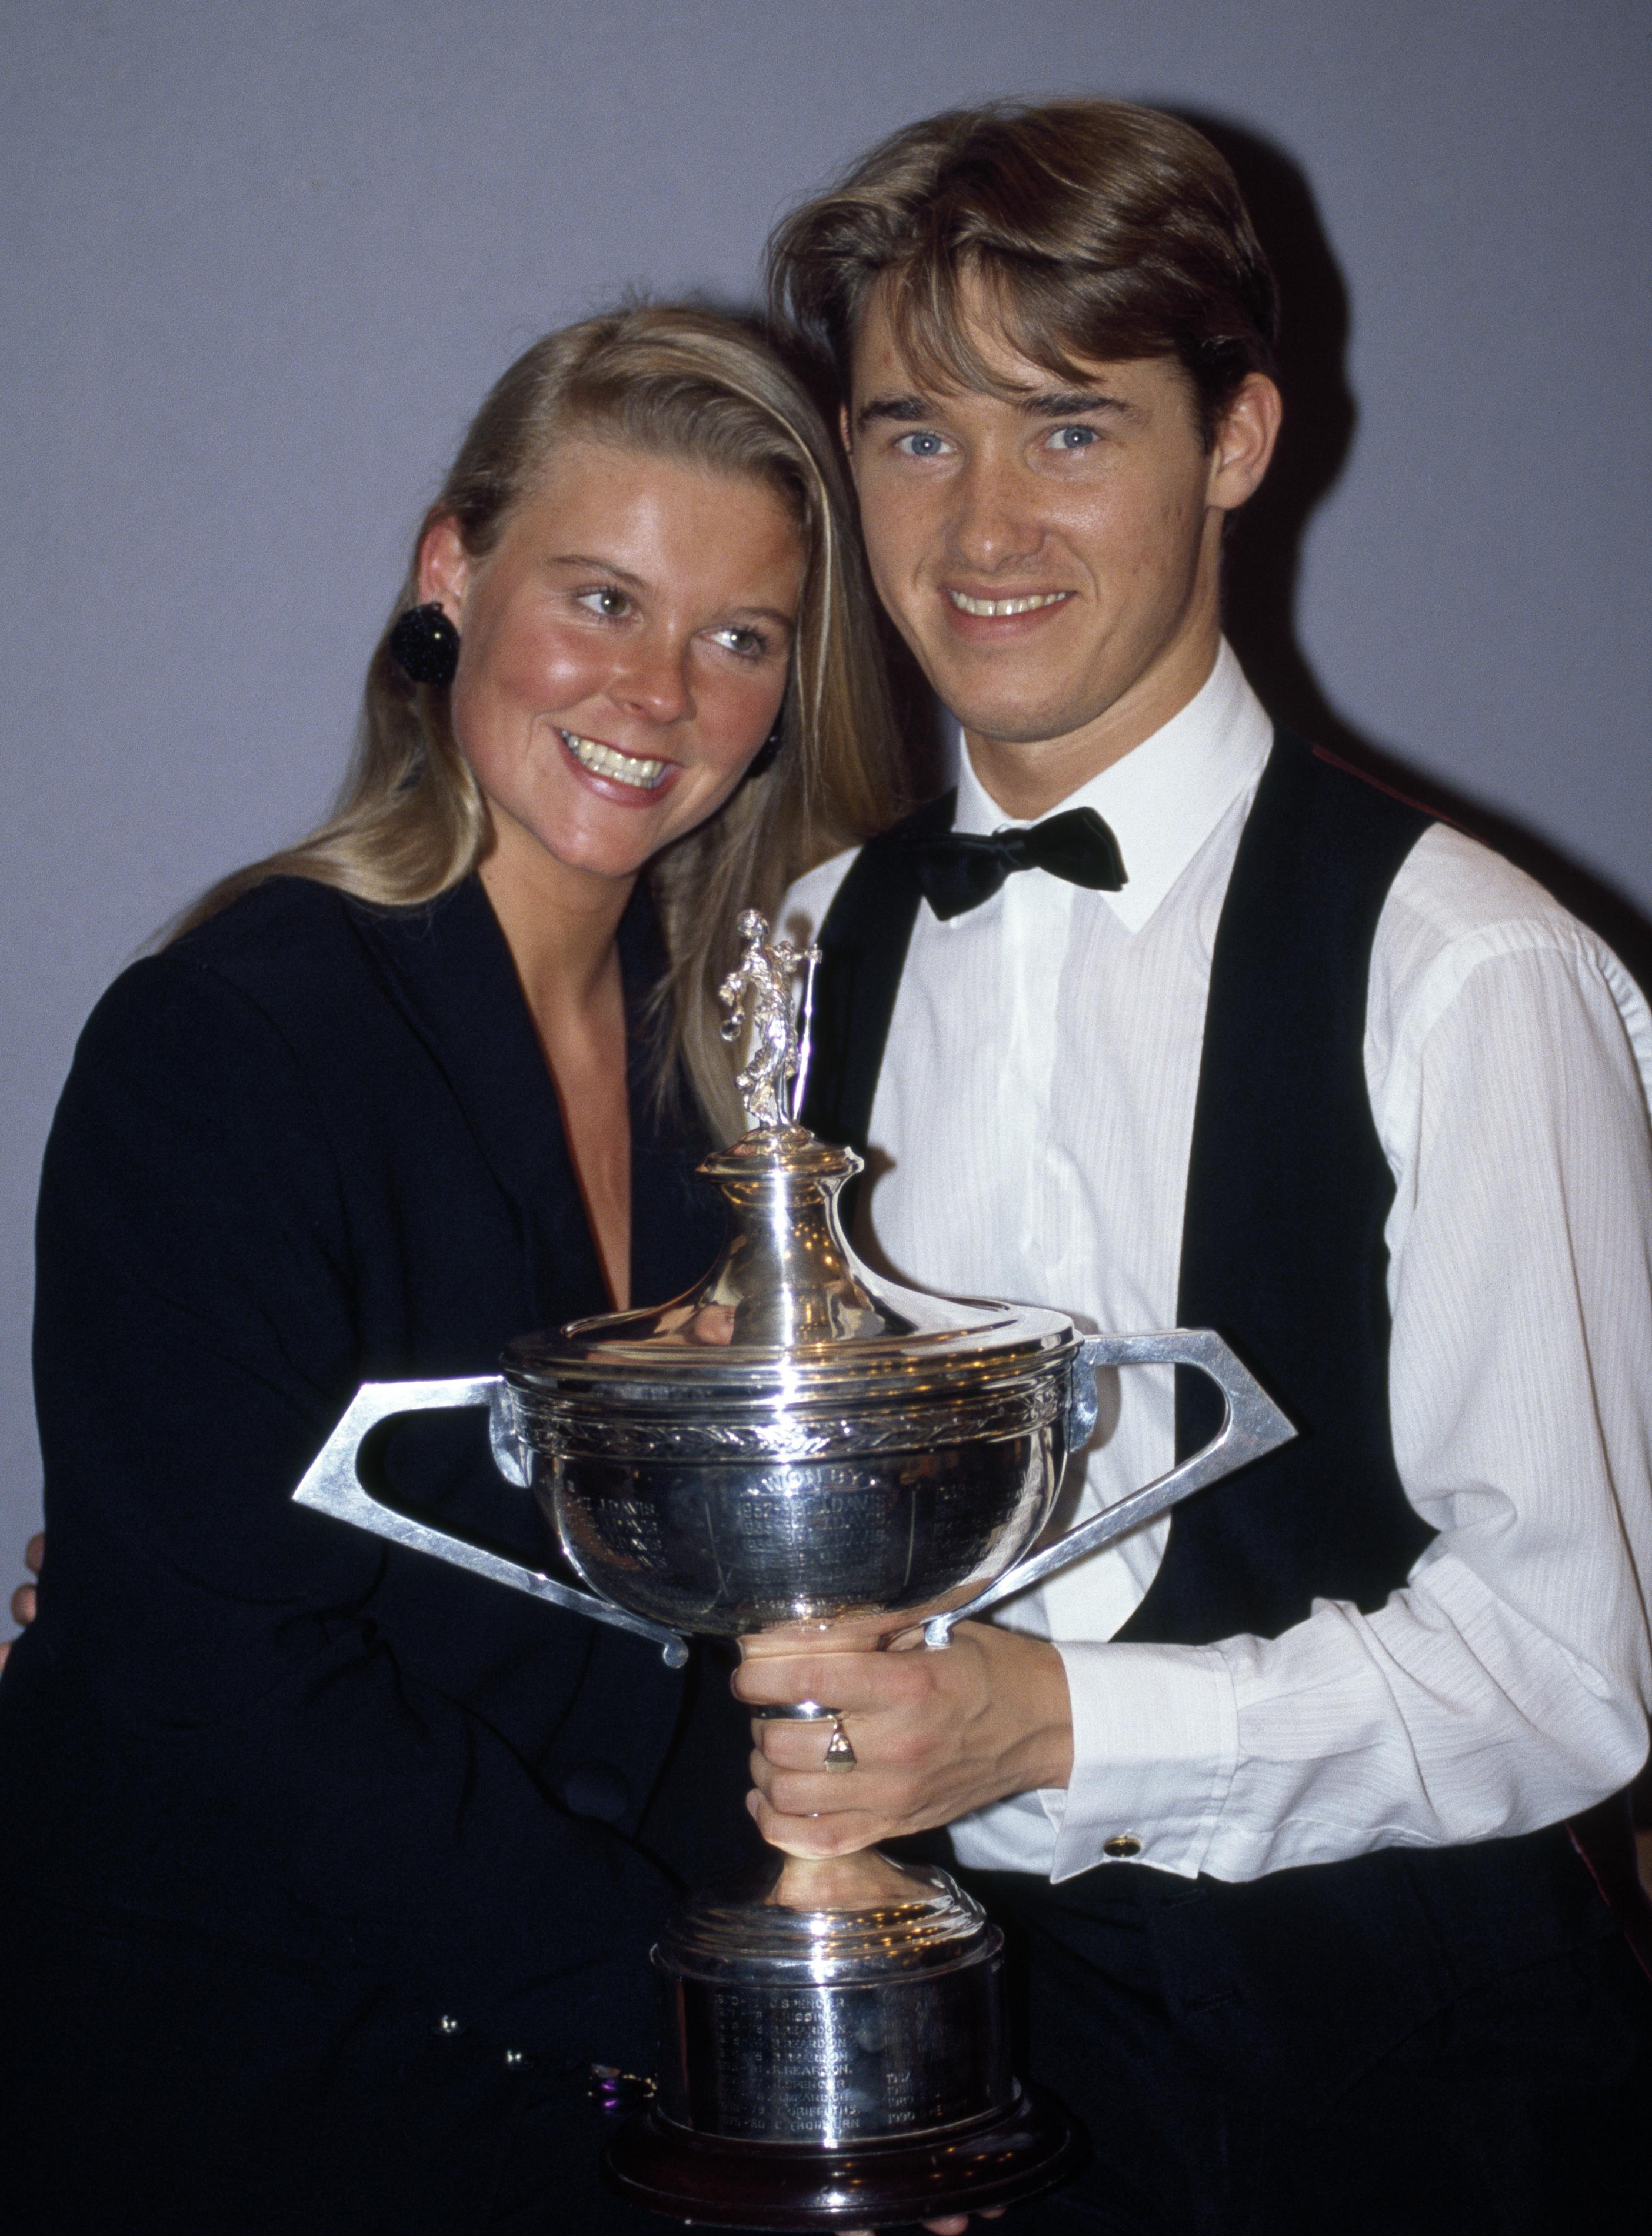 Hendry dominated snooker during the 1990s with then wife Many at his side